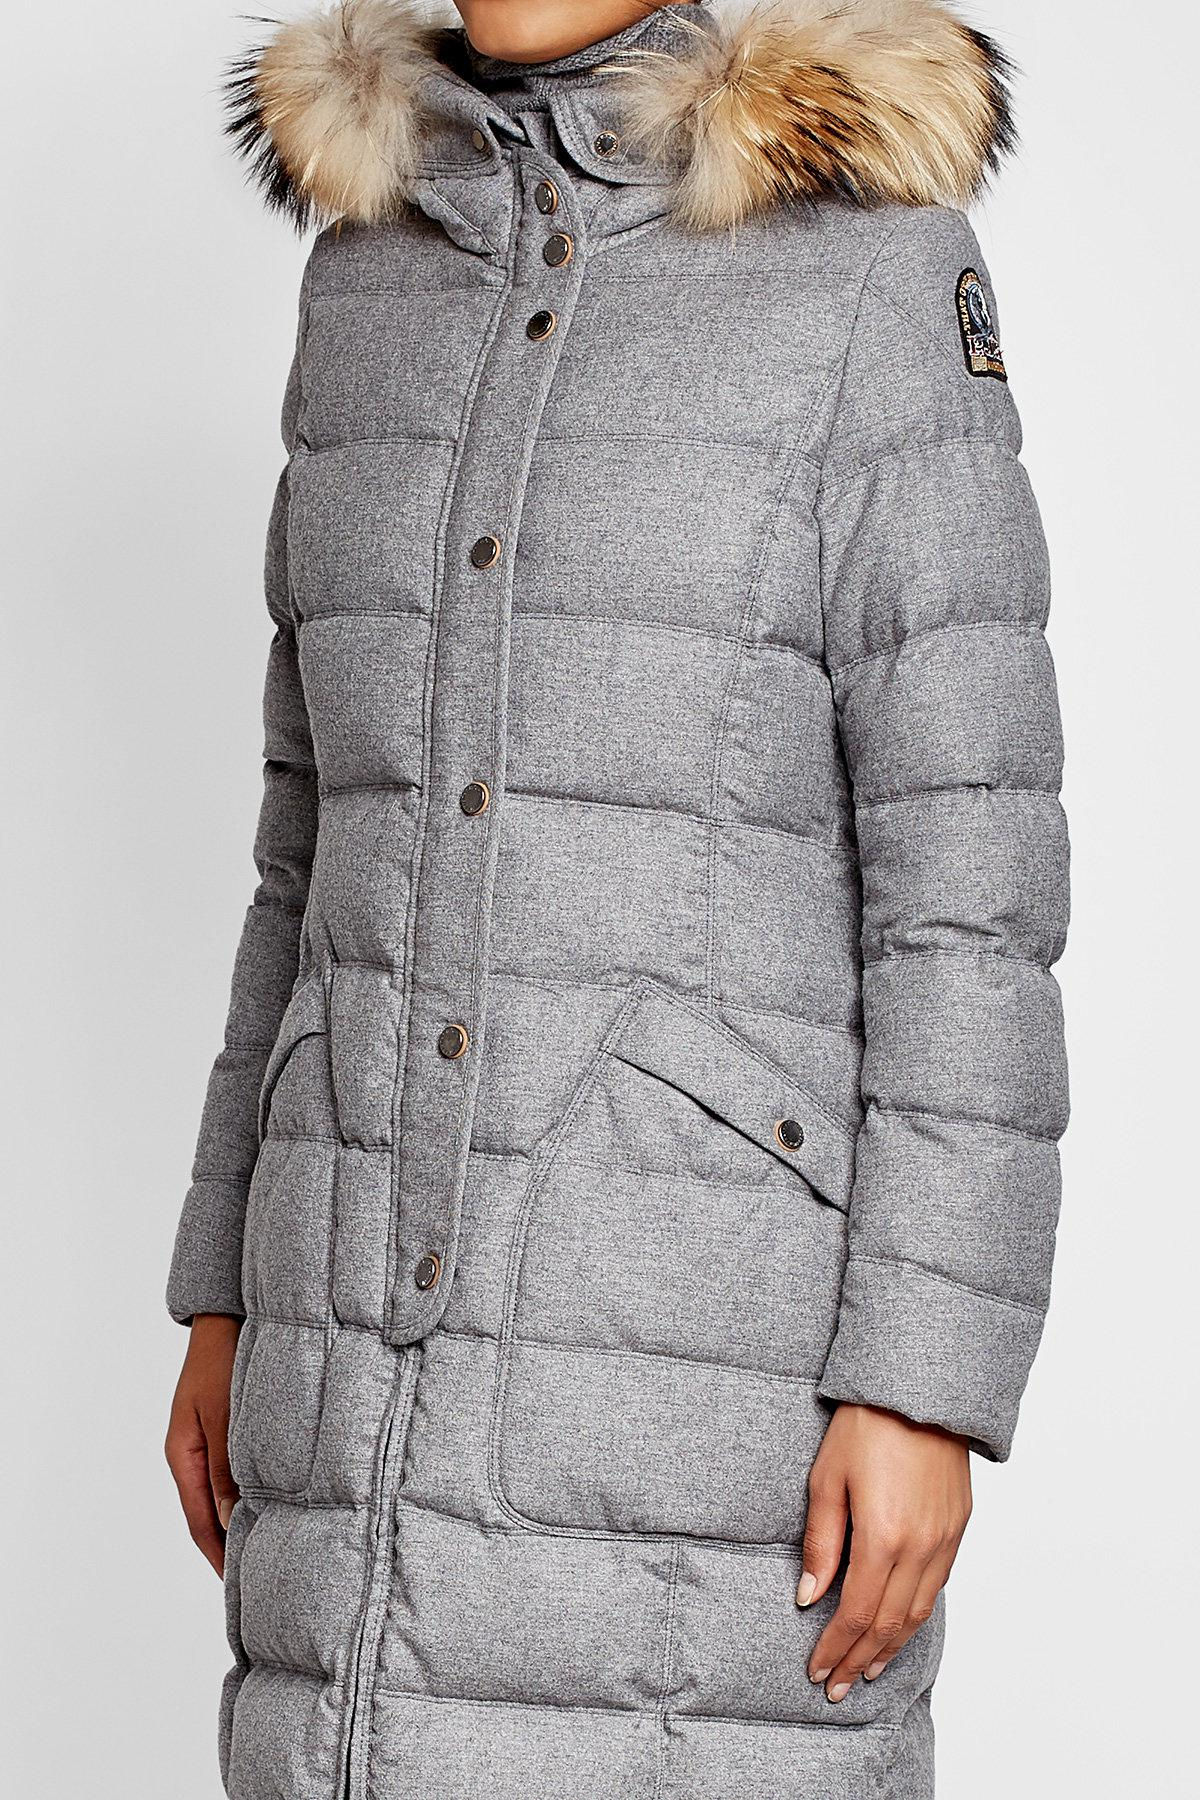 parajumpers wool and down